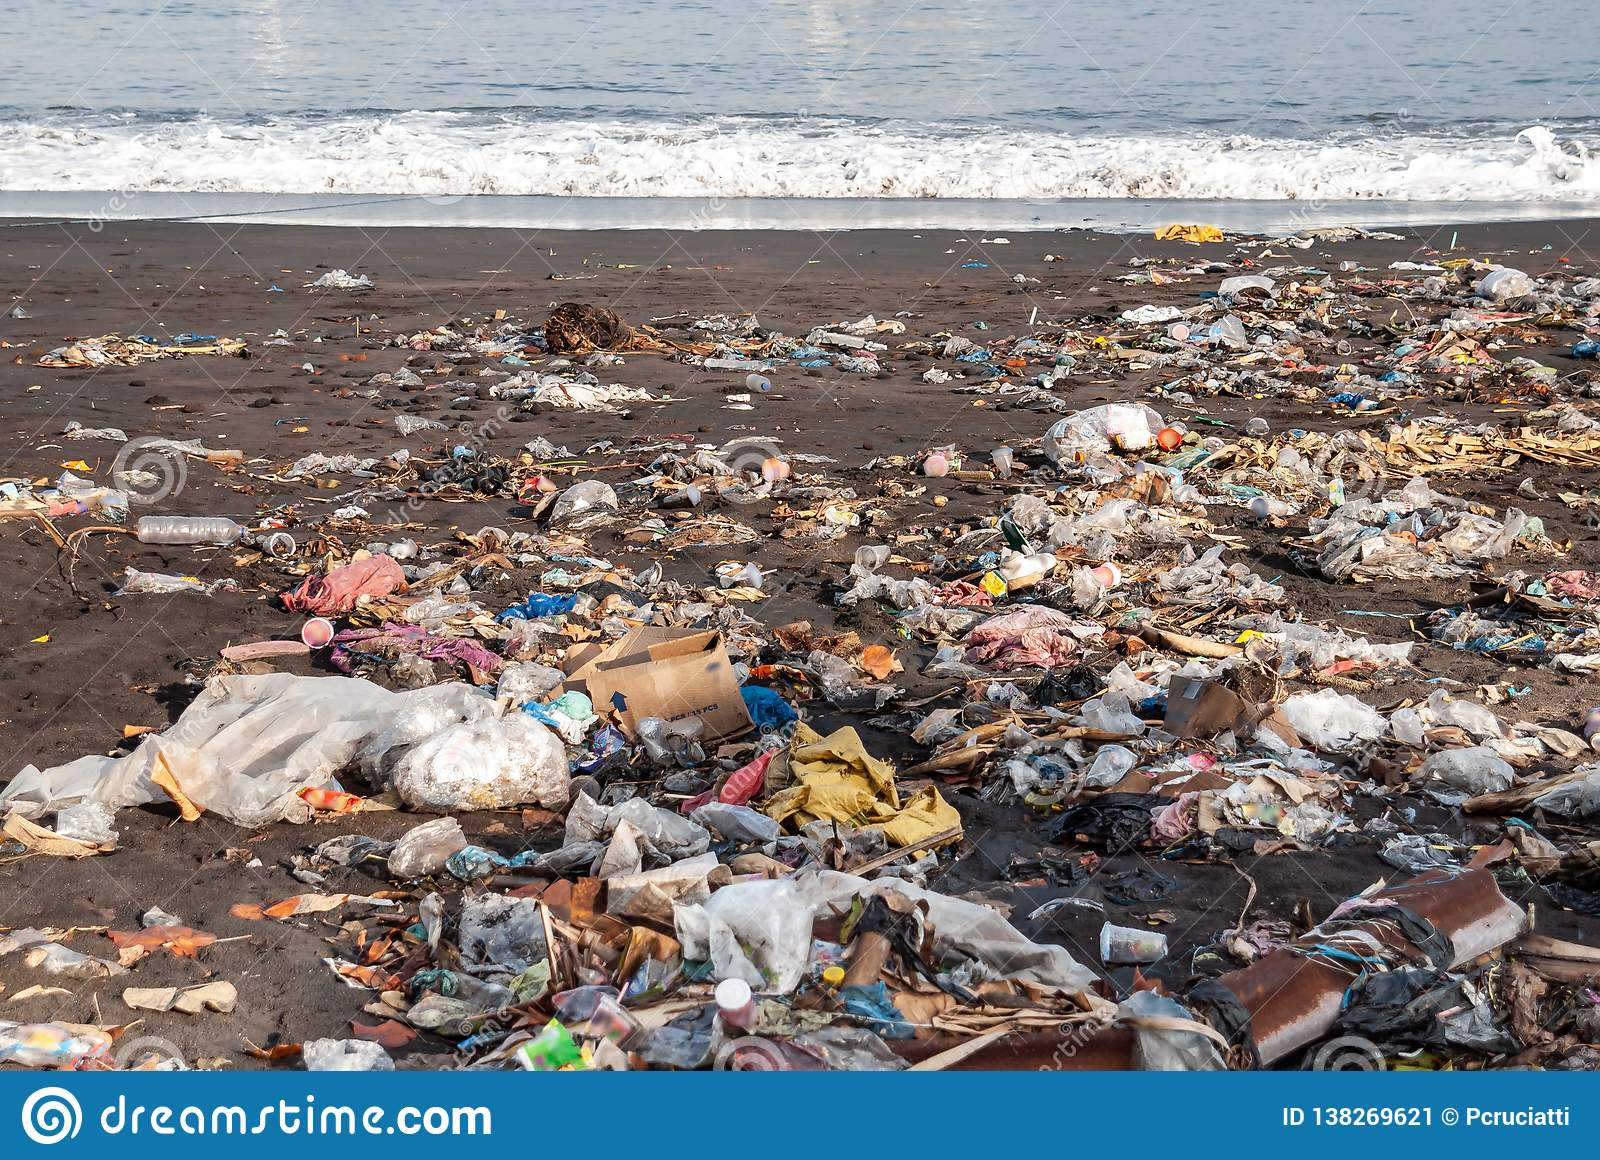 Garbage on a sandy polluted beach